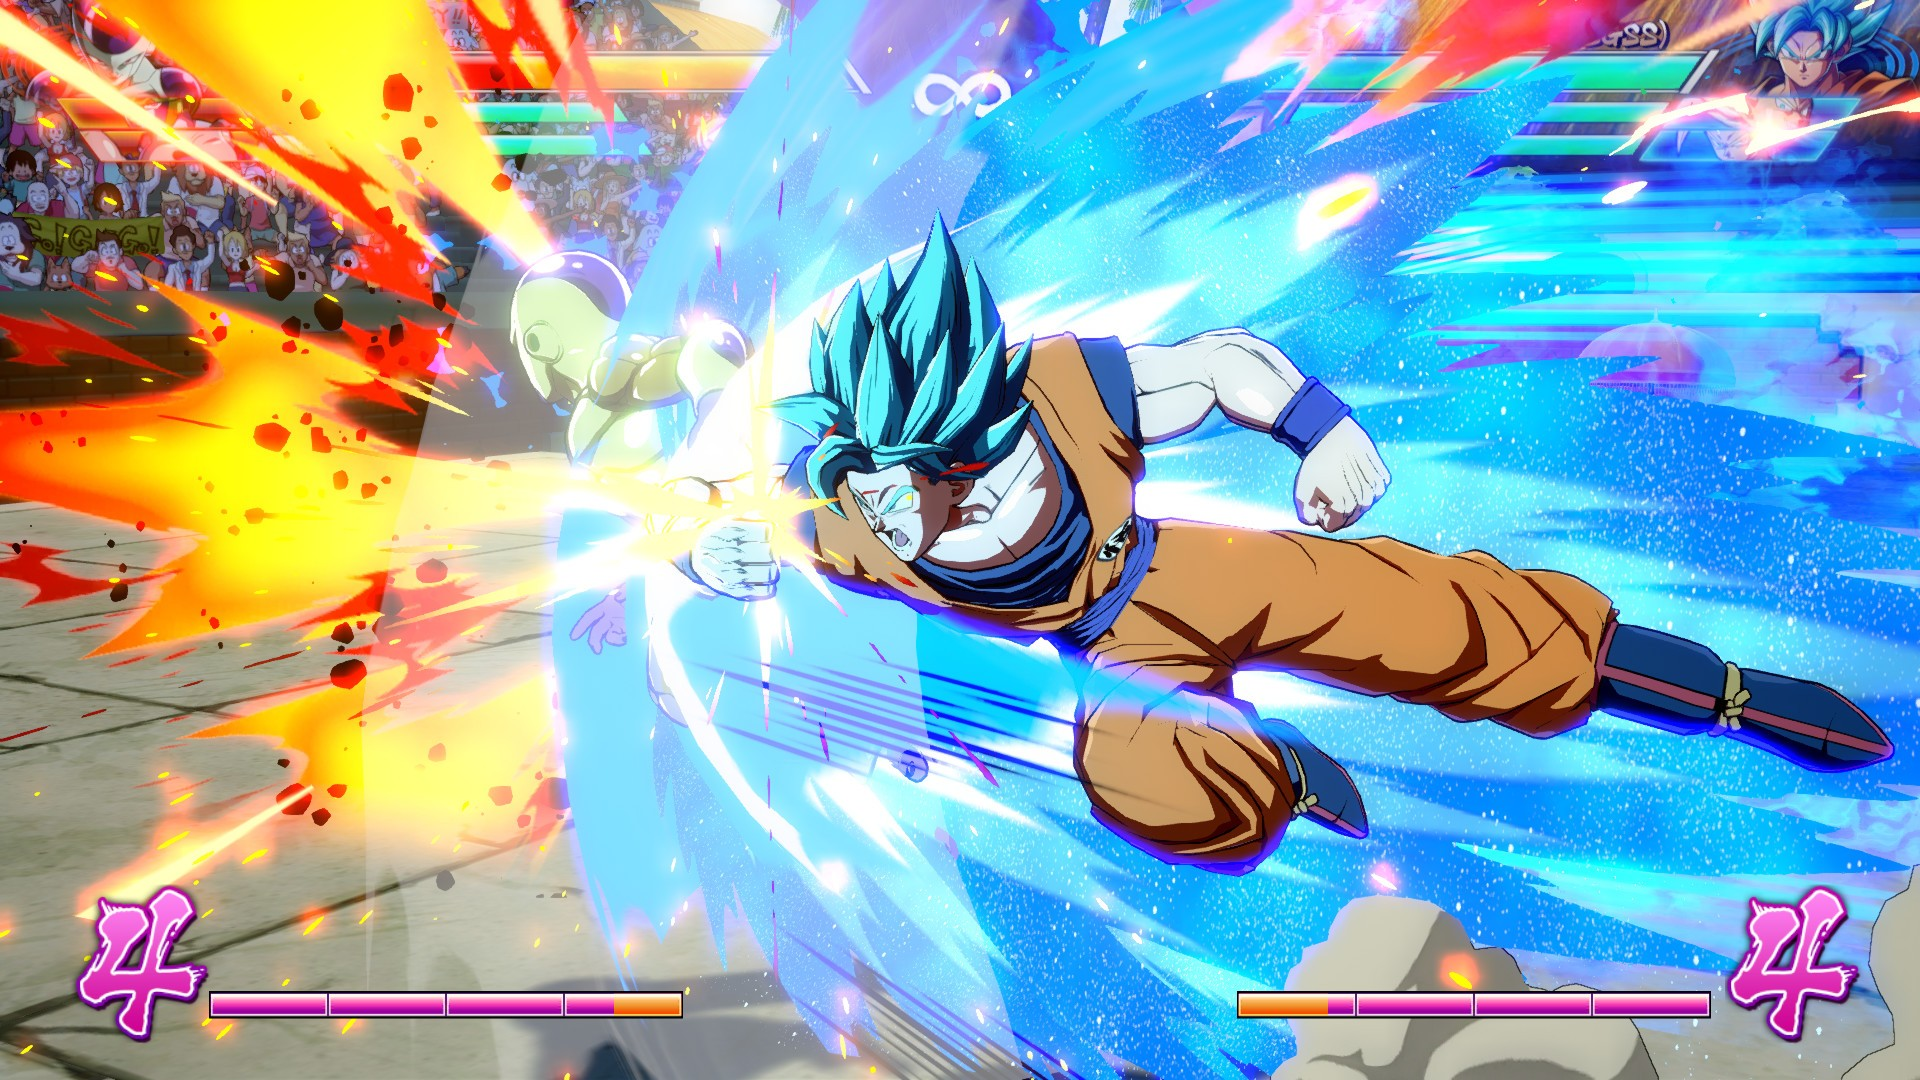 Dragon Ball FighterZ Experiencing Network Issues, May Extend Open Beta